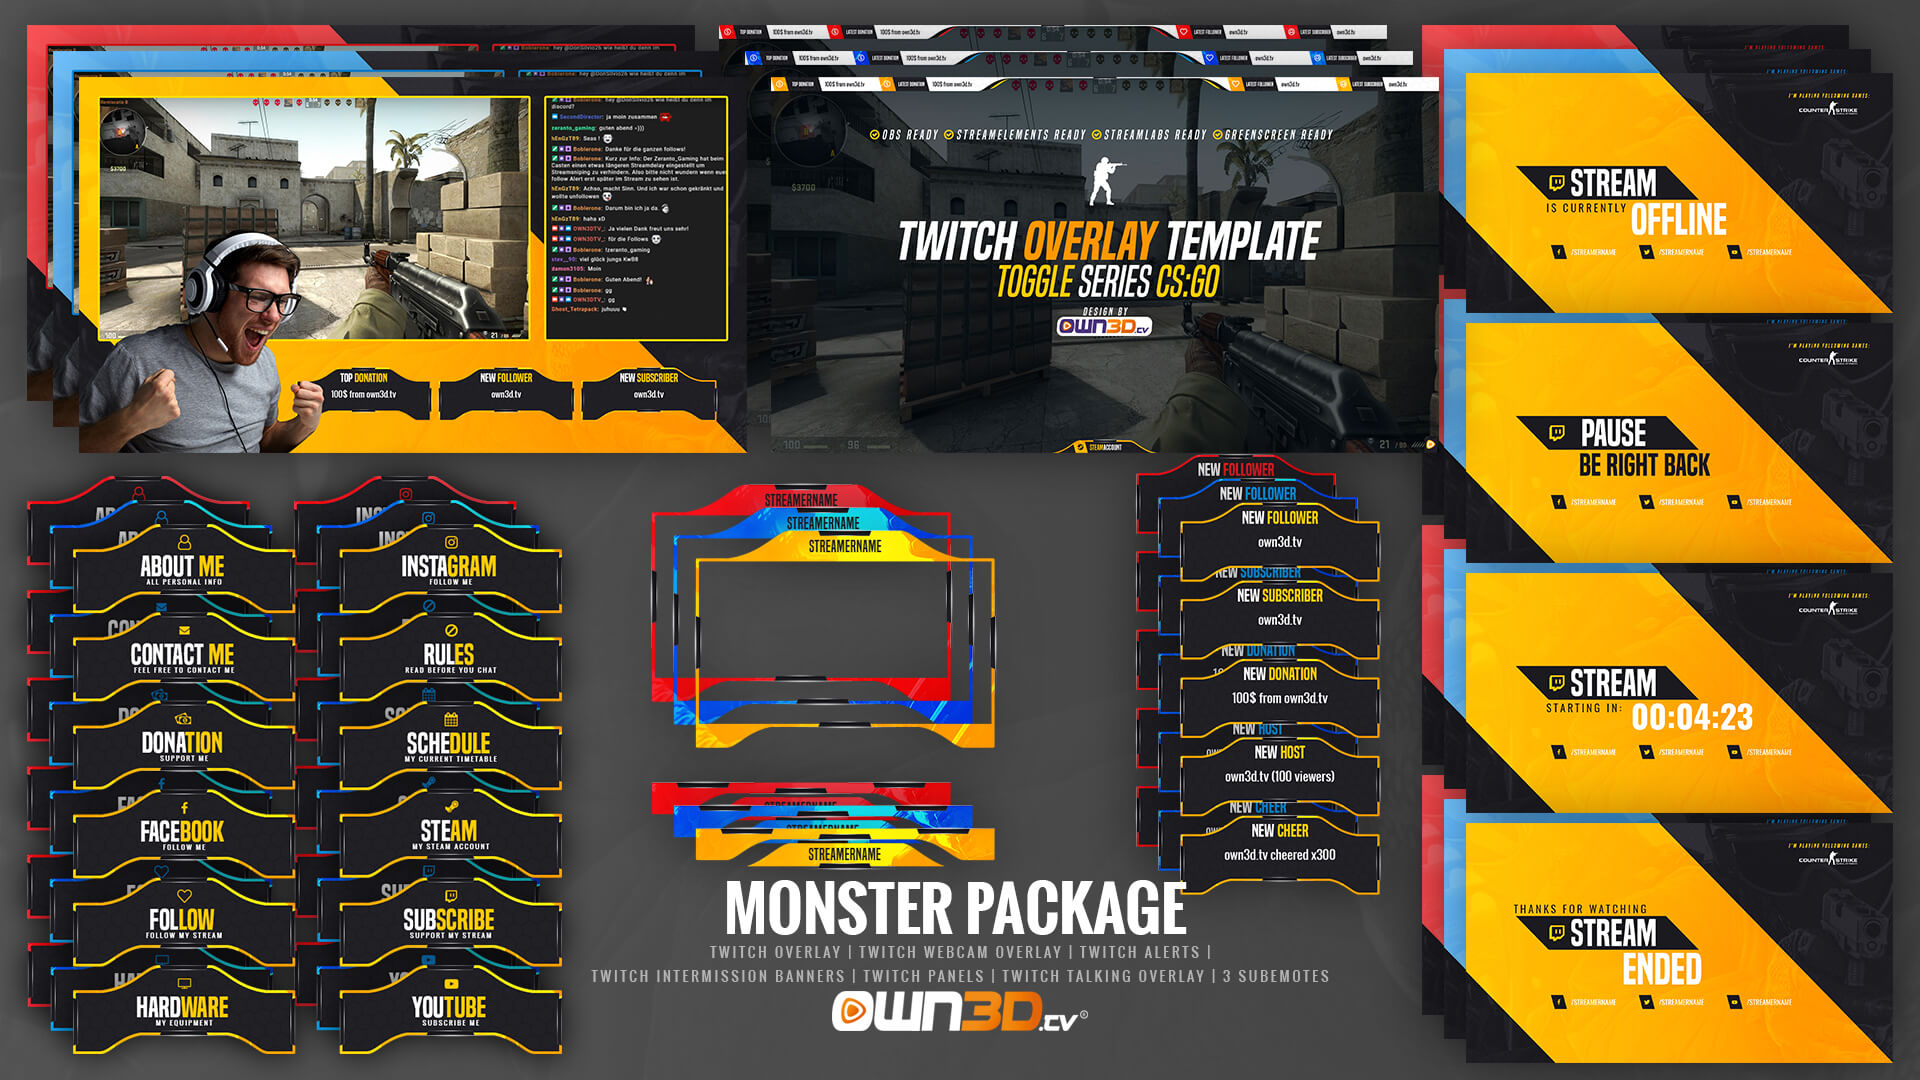 toggle-series-ALL-twitch-overlay-package-03-monster.jpg